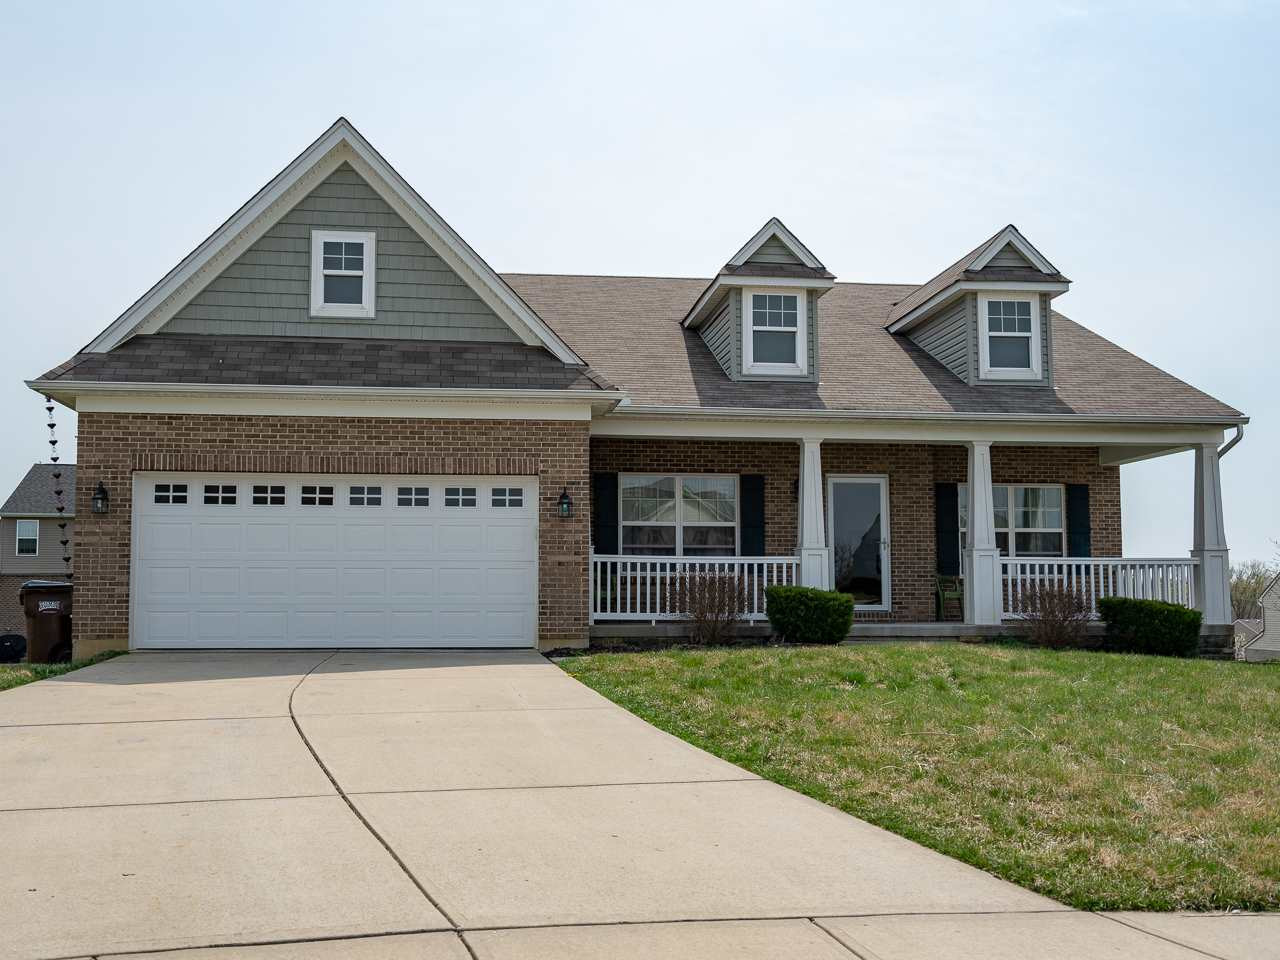 Photo 1 for 927 Ally Way Independence, KY 41051